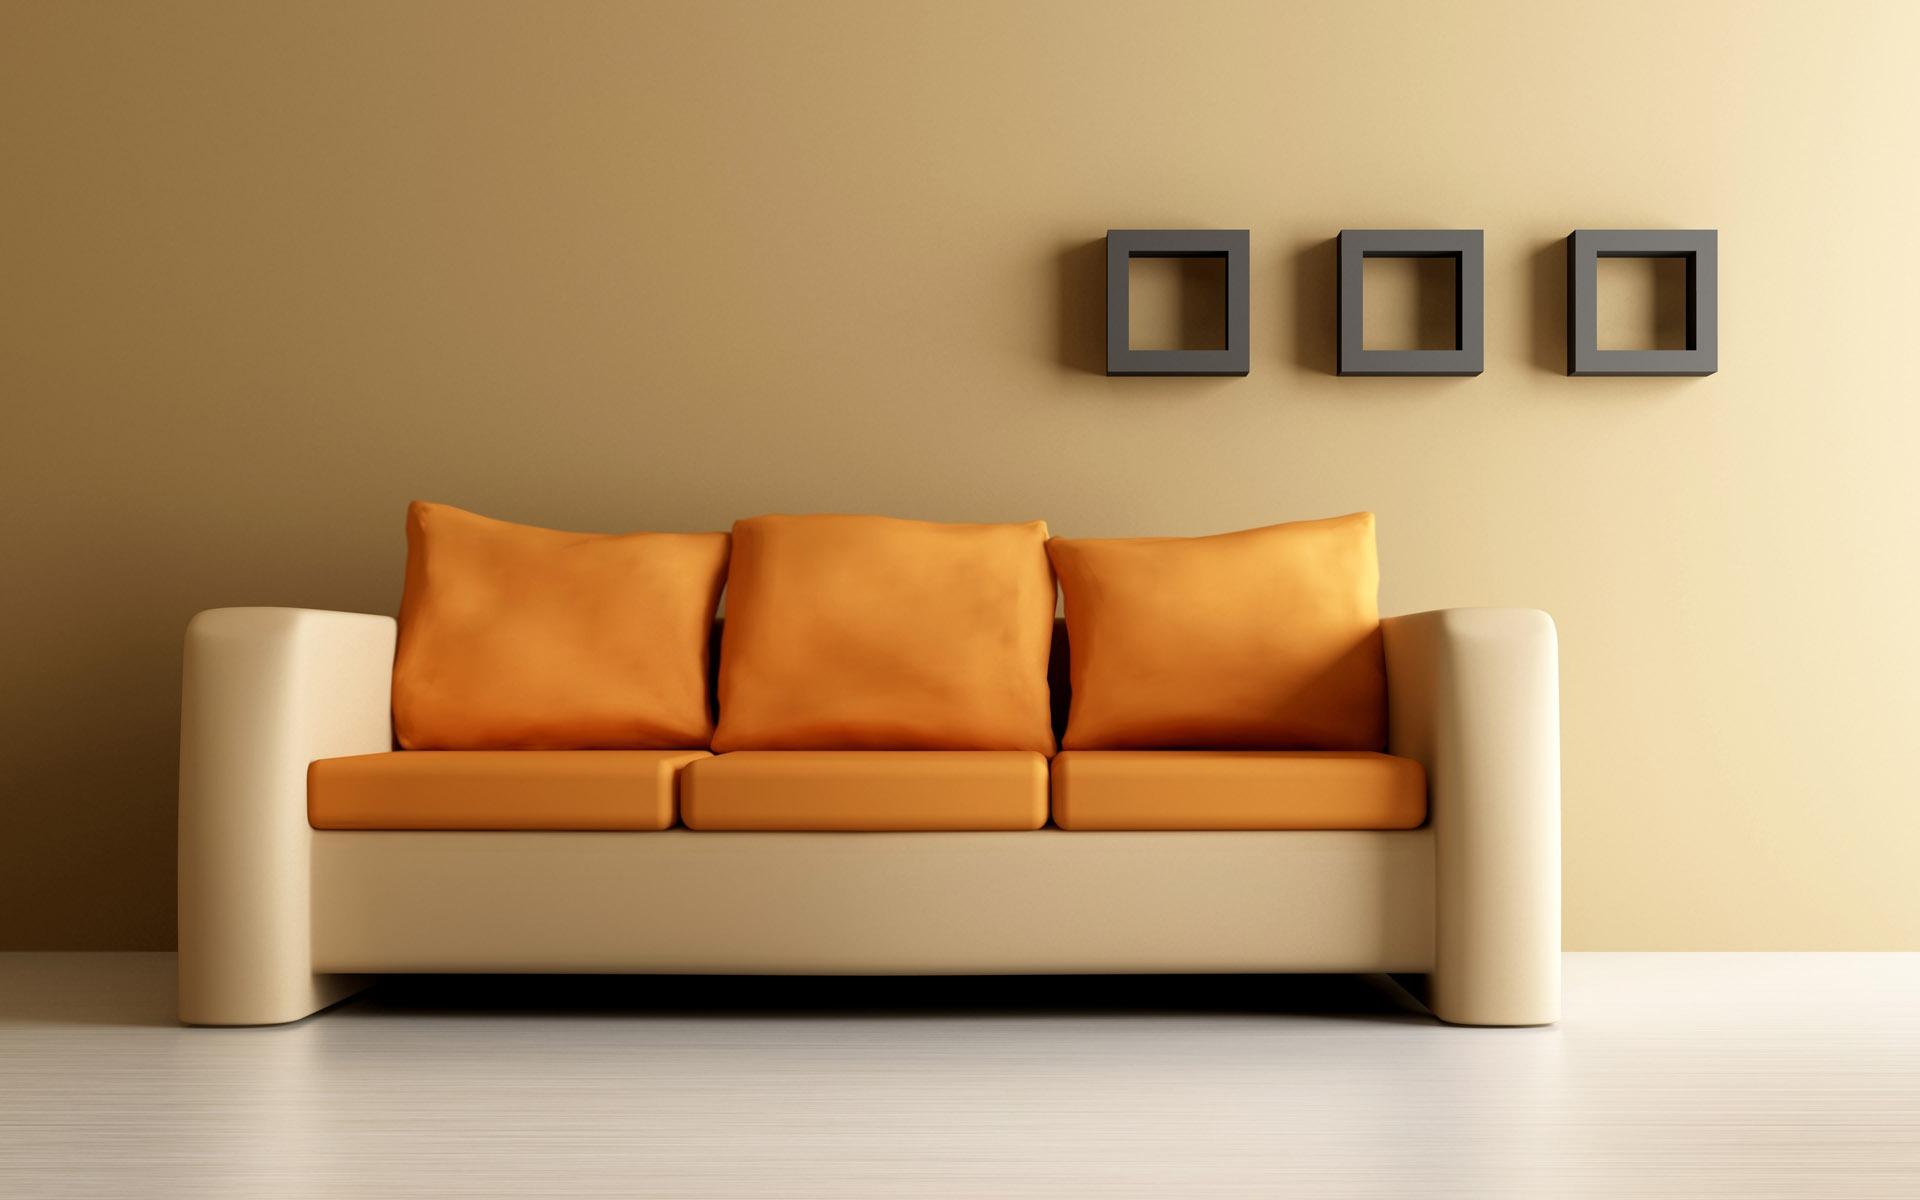 orange couch wallpaper interior design other - Wall Paper Interior Design